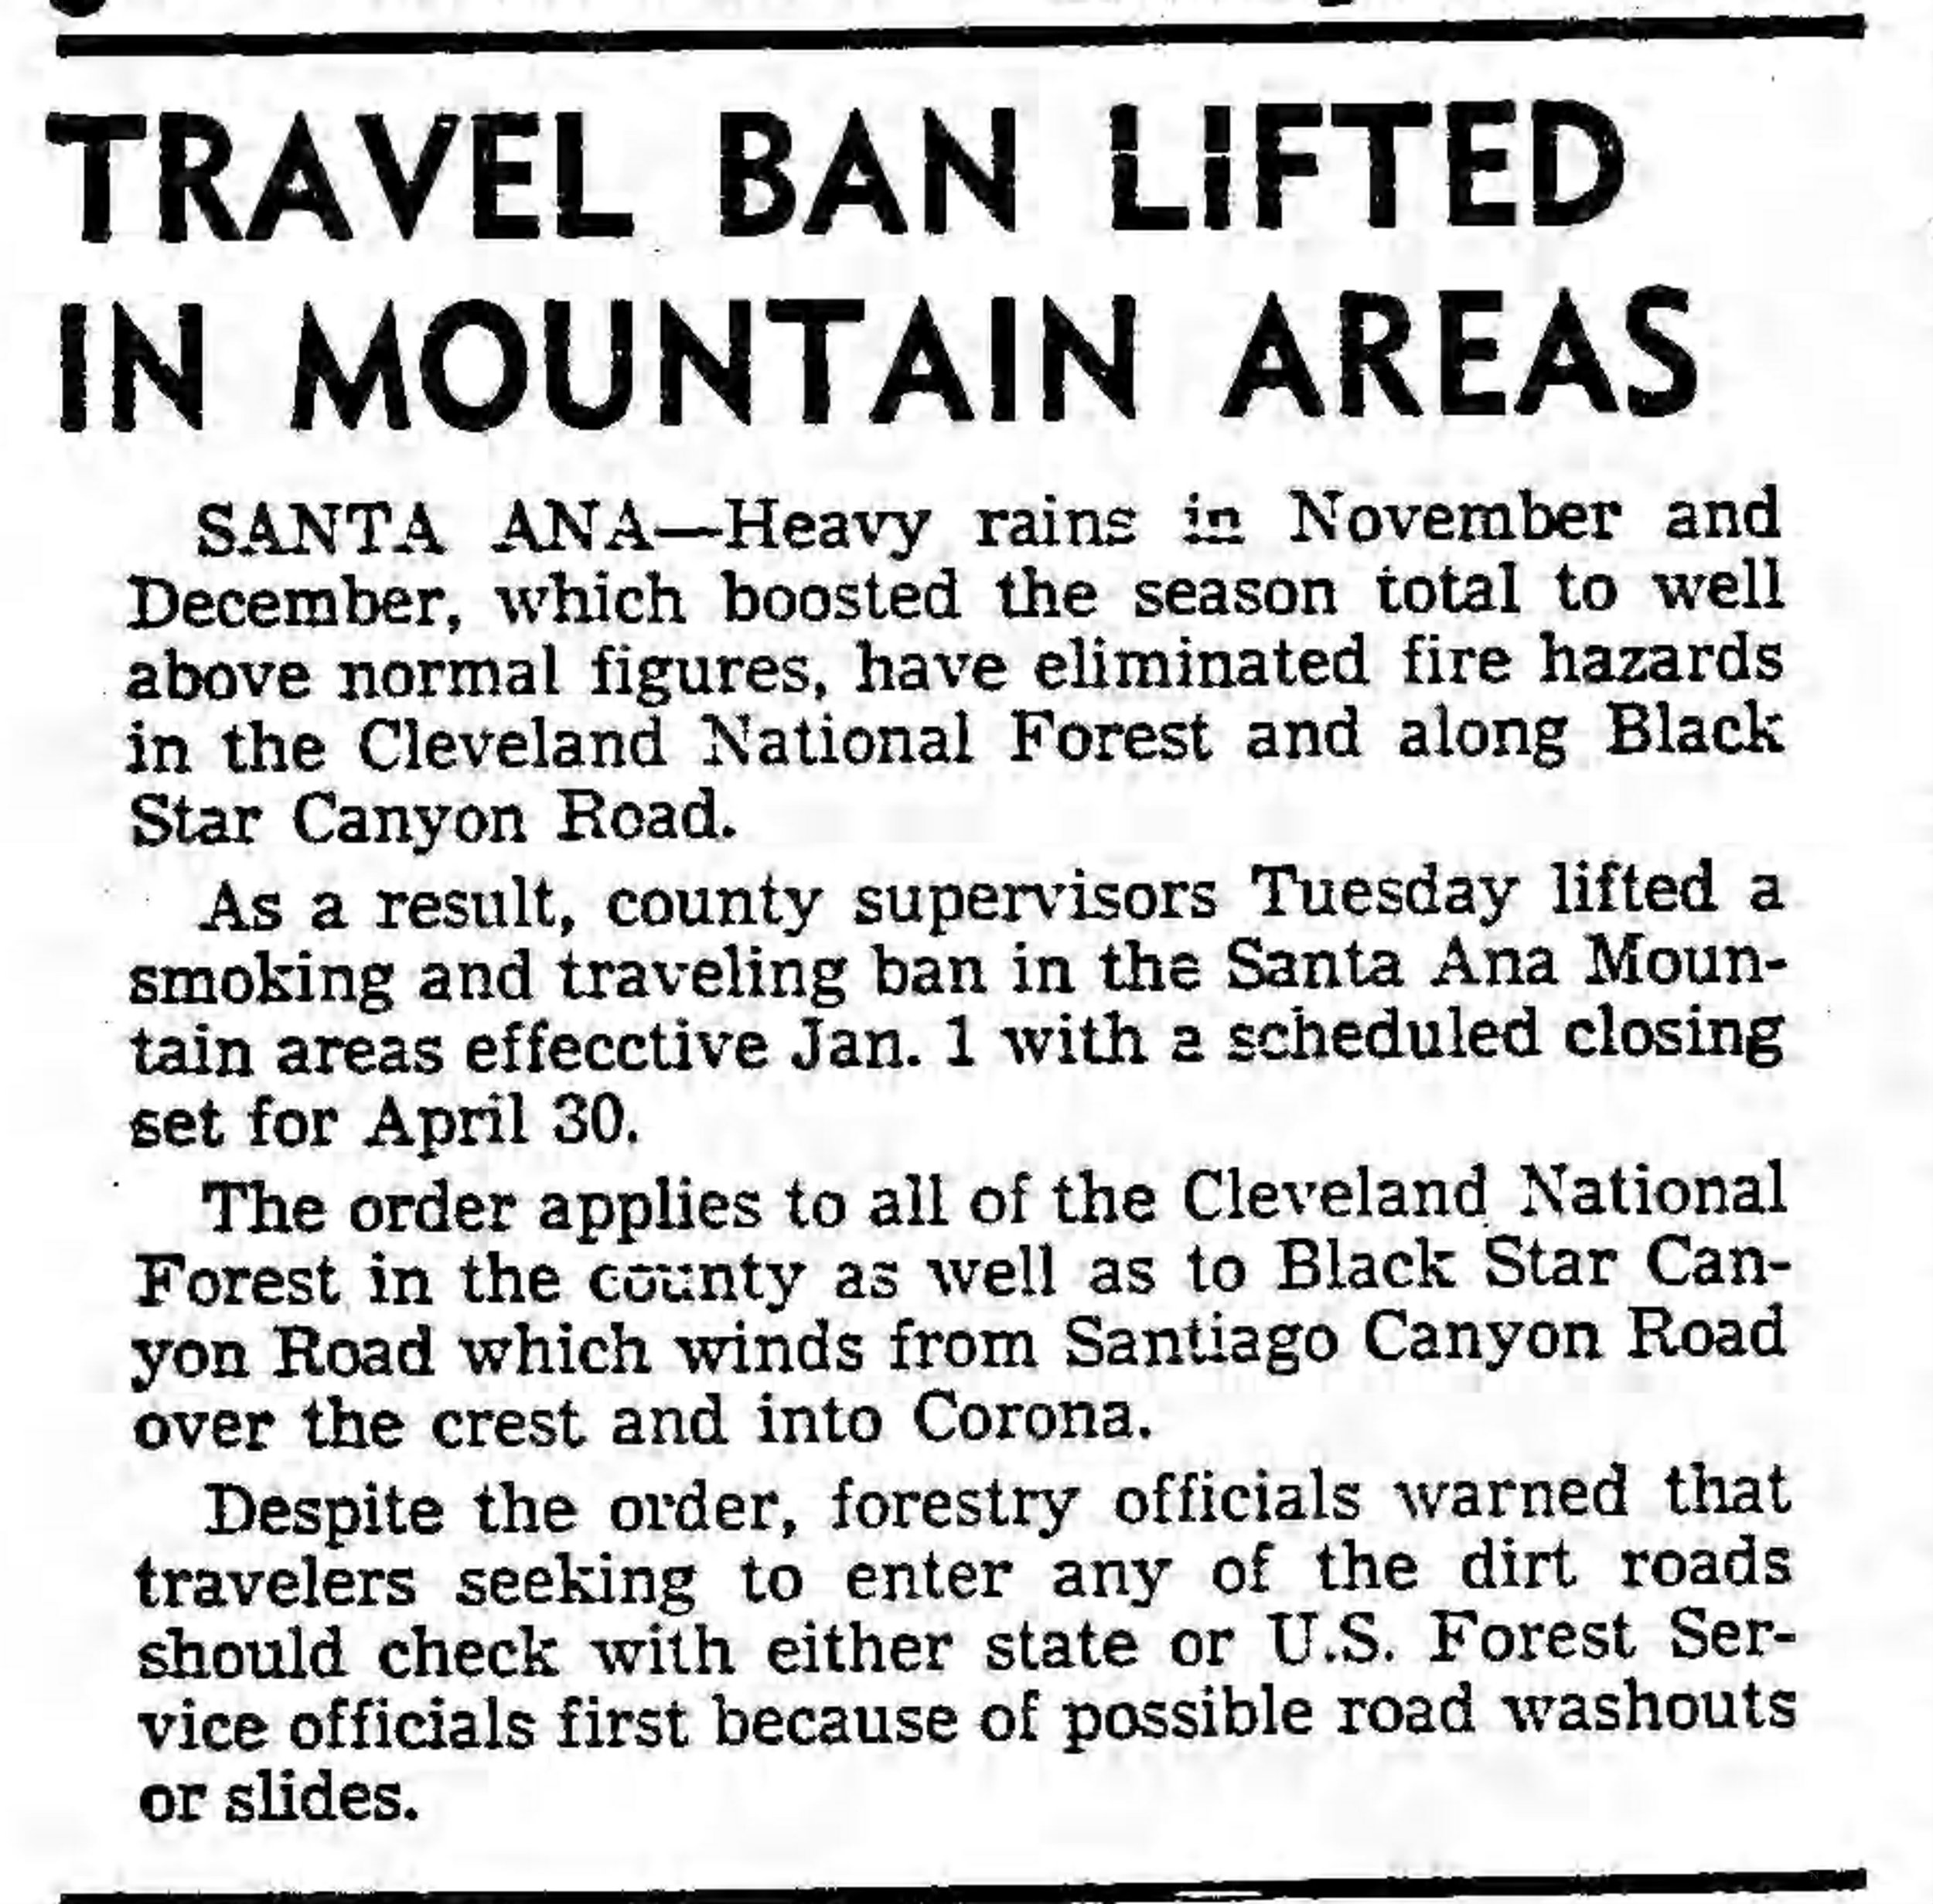 The_Los_Angeles_Times_Wed__Dec_30__1970_.jpg